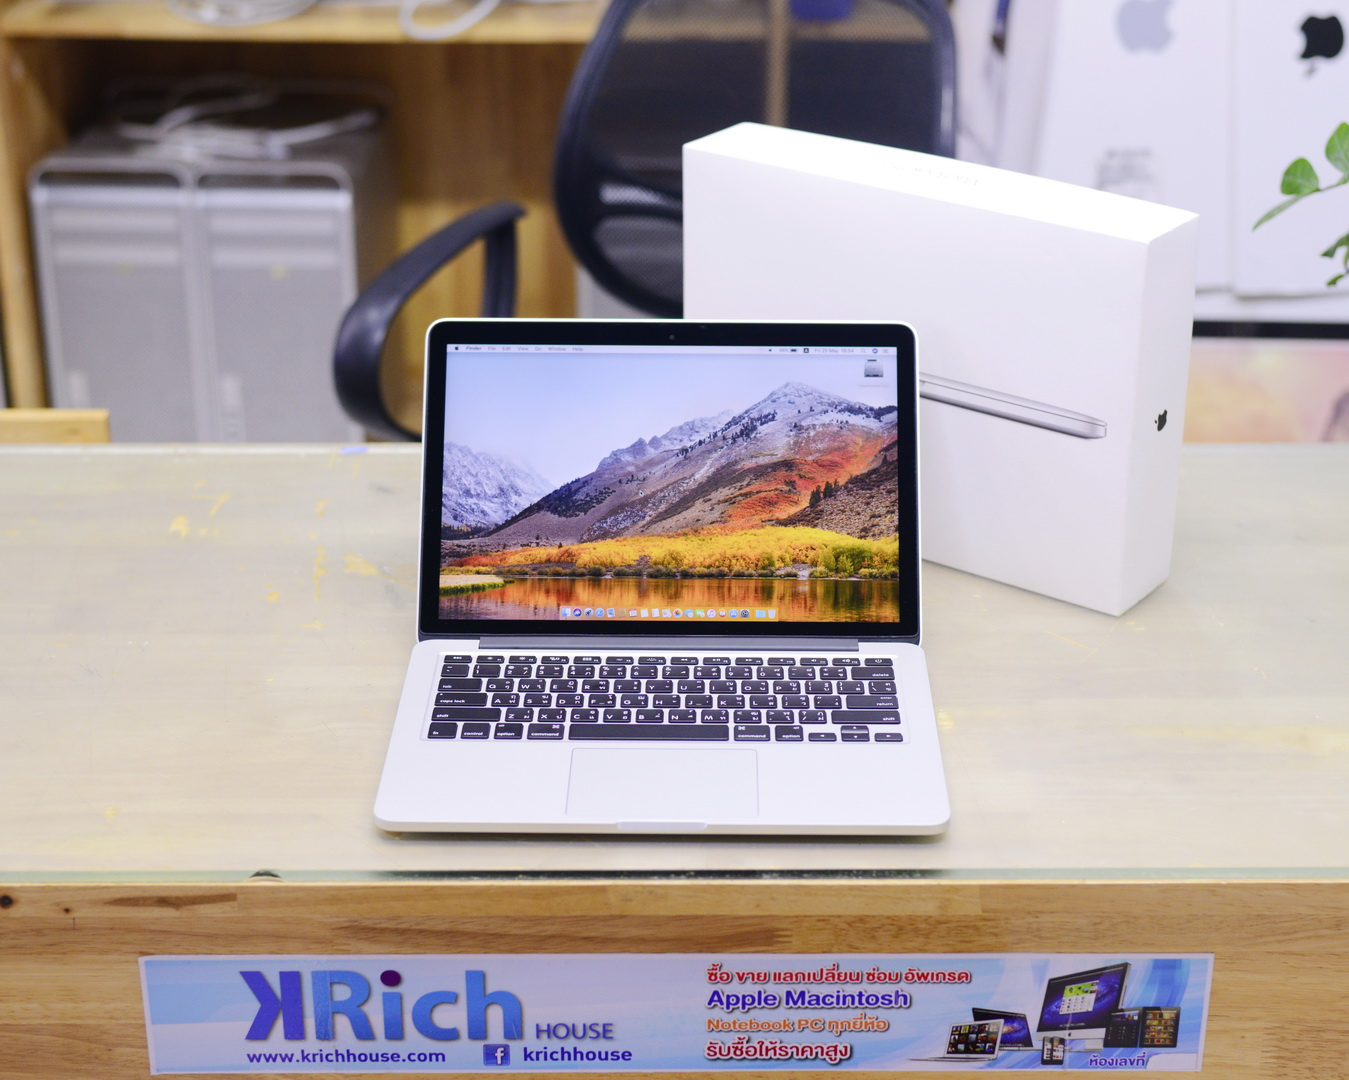 CTO - MacBook Pro (13-inch, Early 2015) - Core i5 2.9GHz RAM 16GB SSD 128GB Fullbox - New Display+Battery